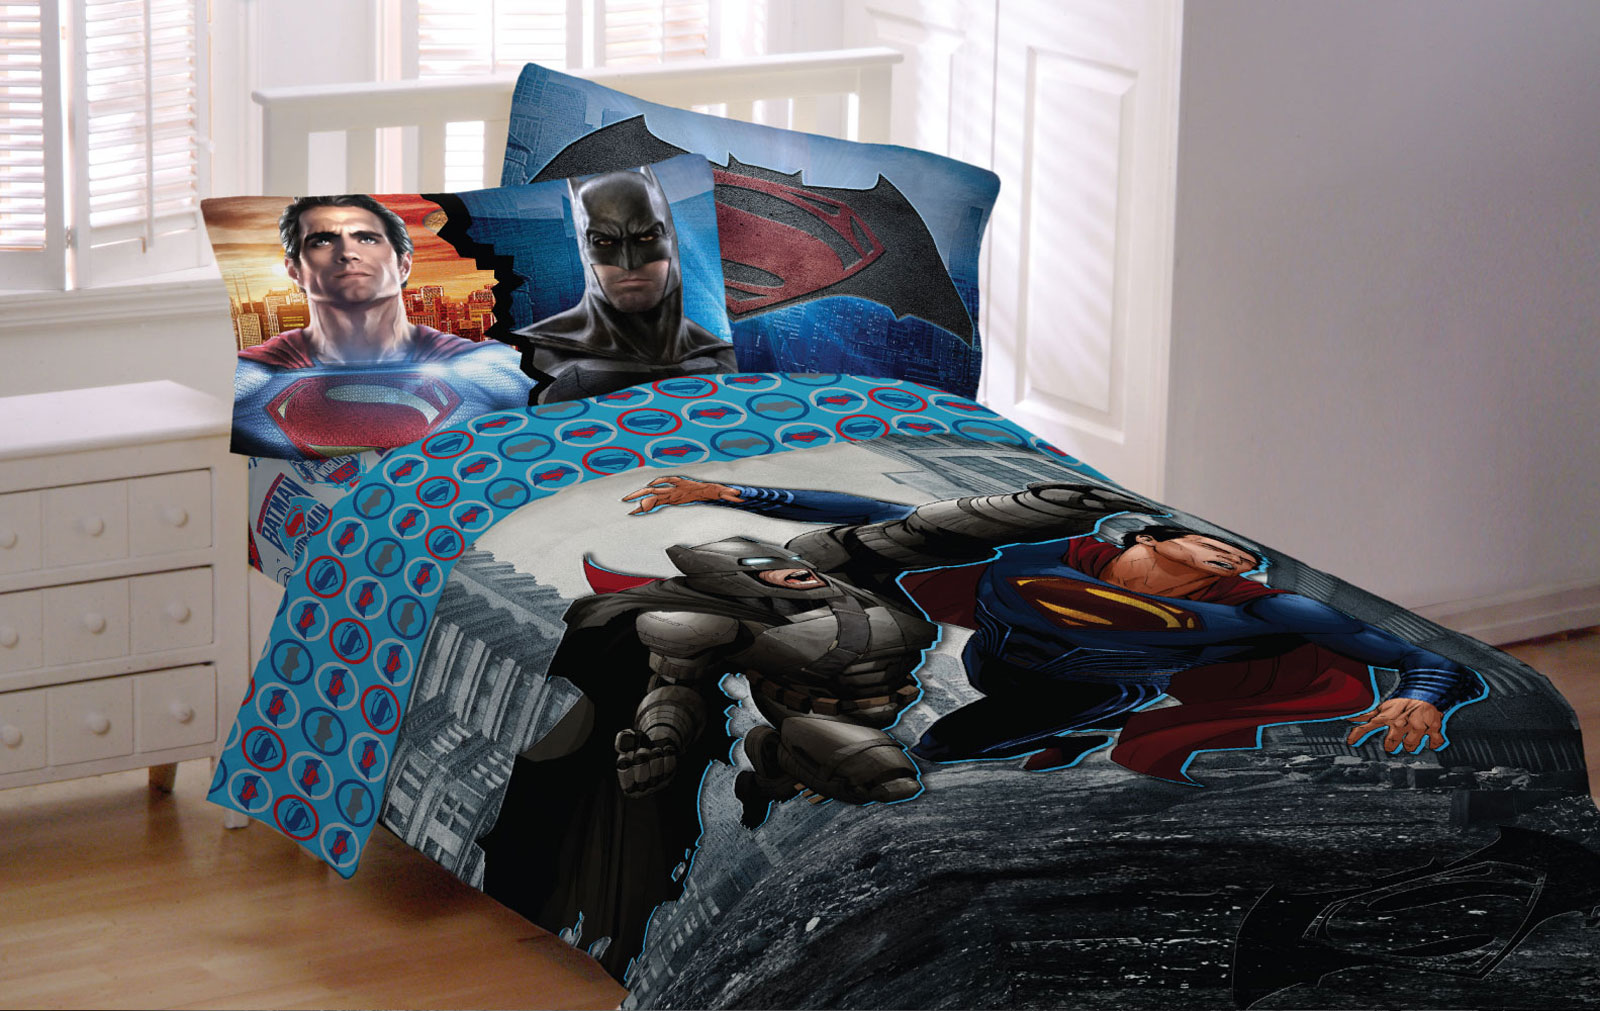 Exceptionnel Store51 Llc 18082816 Batman Vs Superman Bedding Set Worlds Finest Heroes  Comforter And Sheet Set   Walmart.com